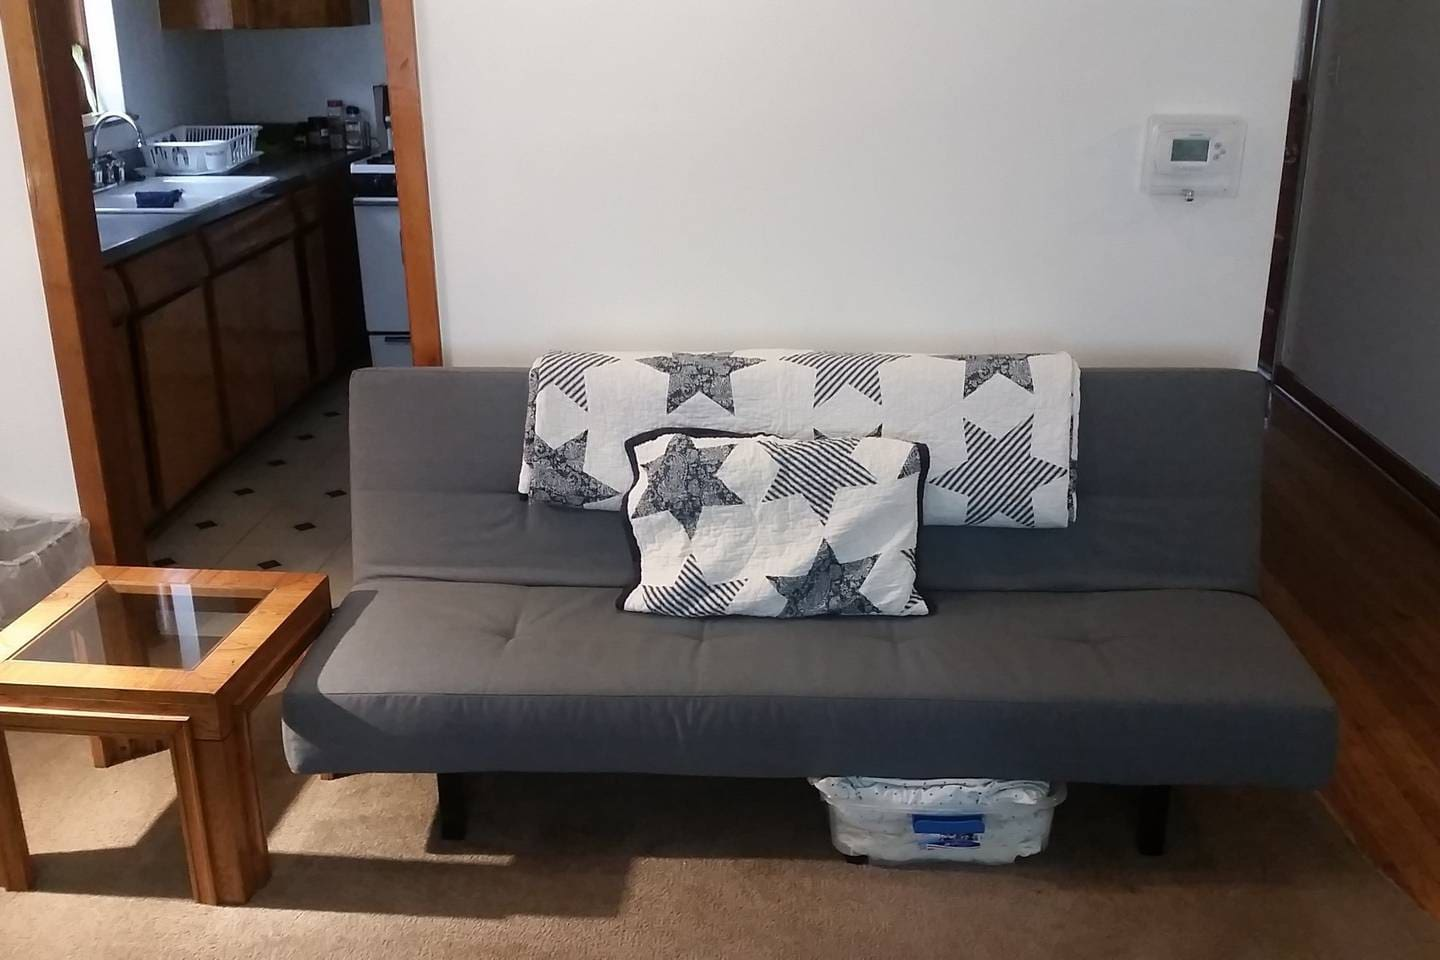 The twin sized futon booked with this listing.